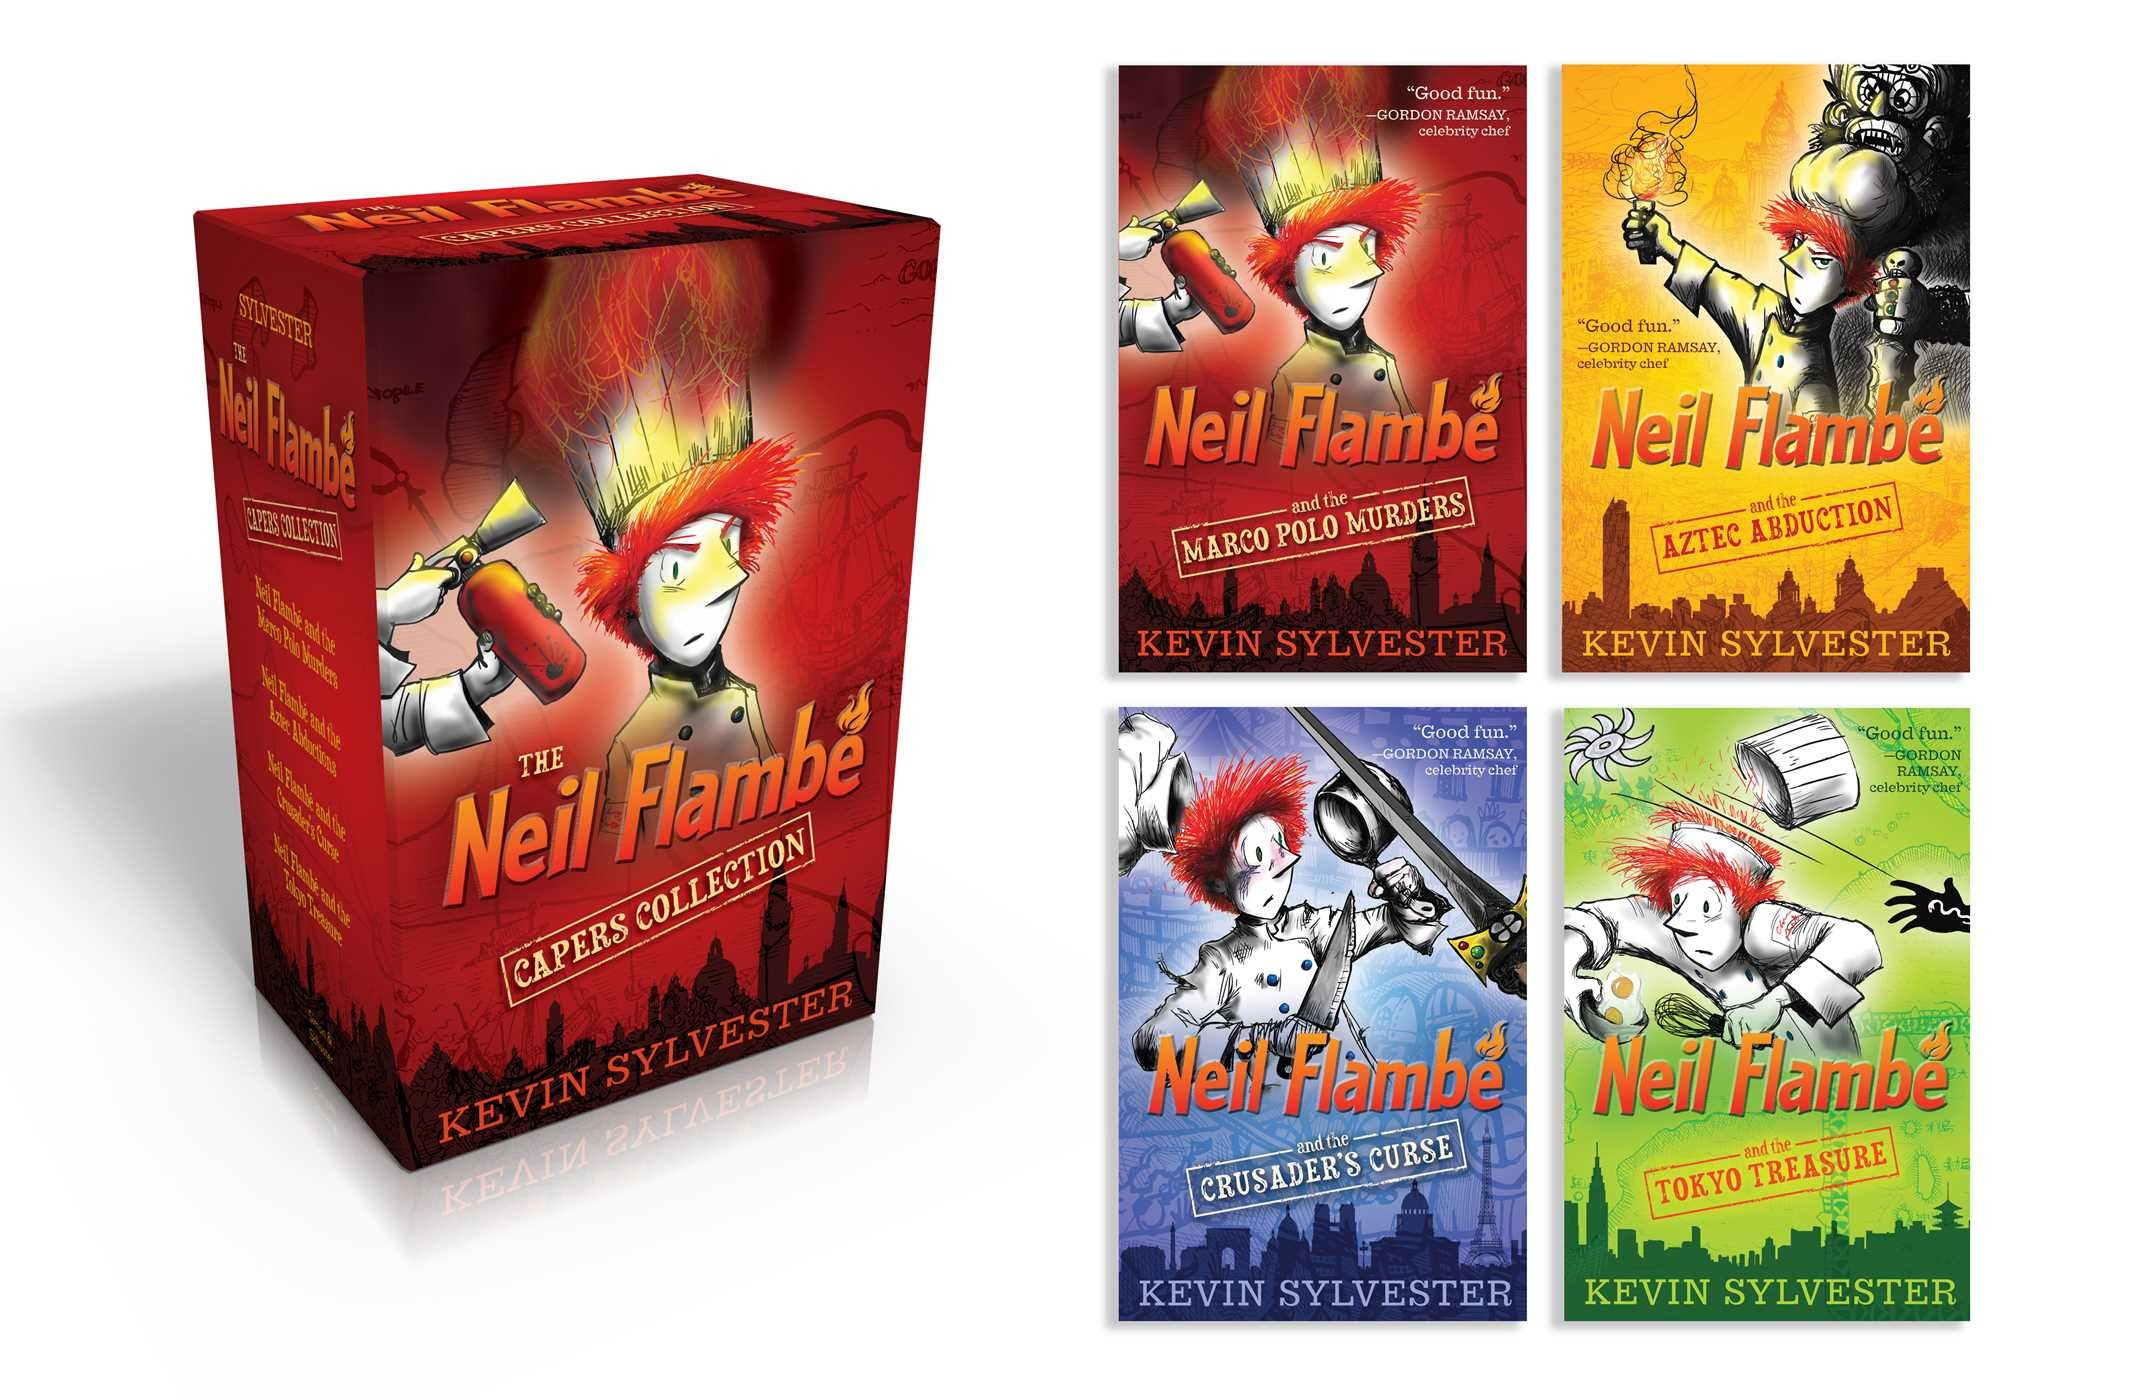 The-neil-flambe-capers-collection-9781481432382.in01